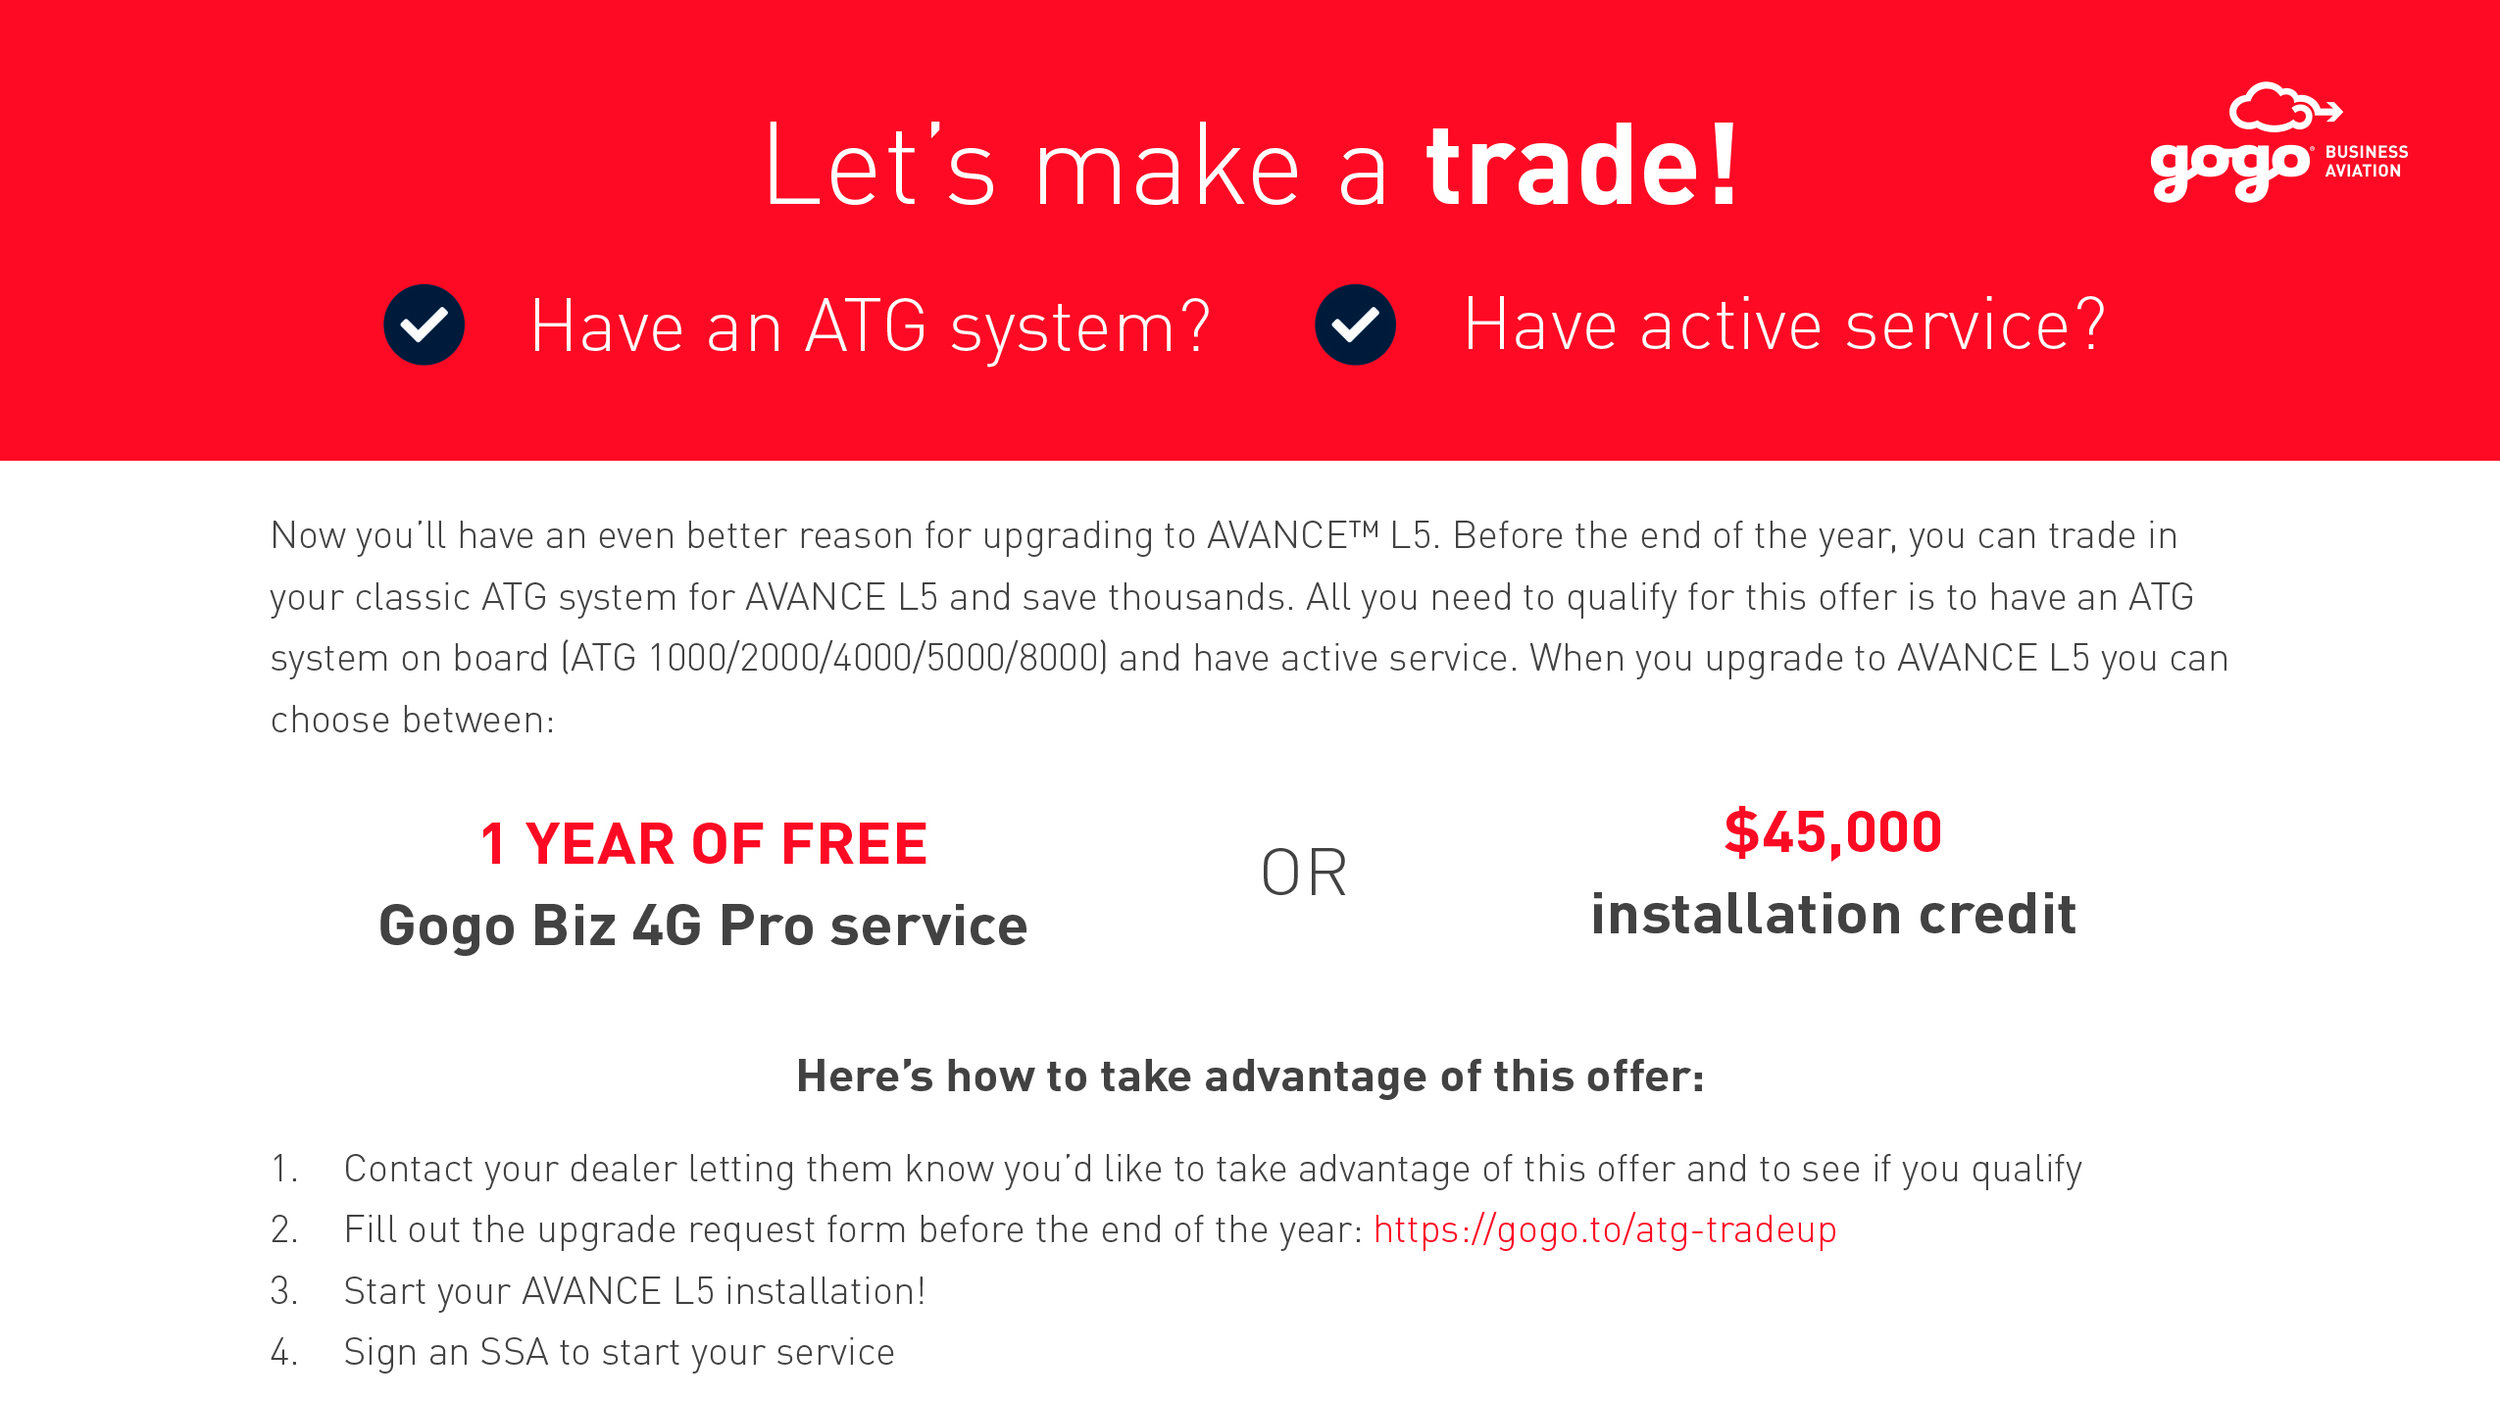 ATG-TradeUp-Program-Image.jpg